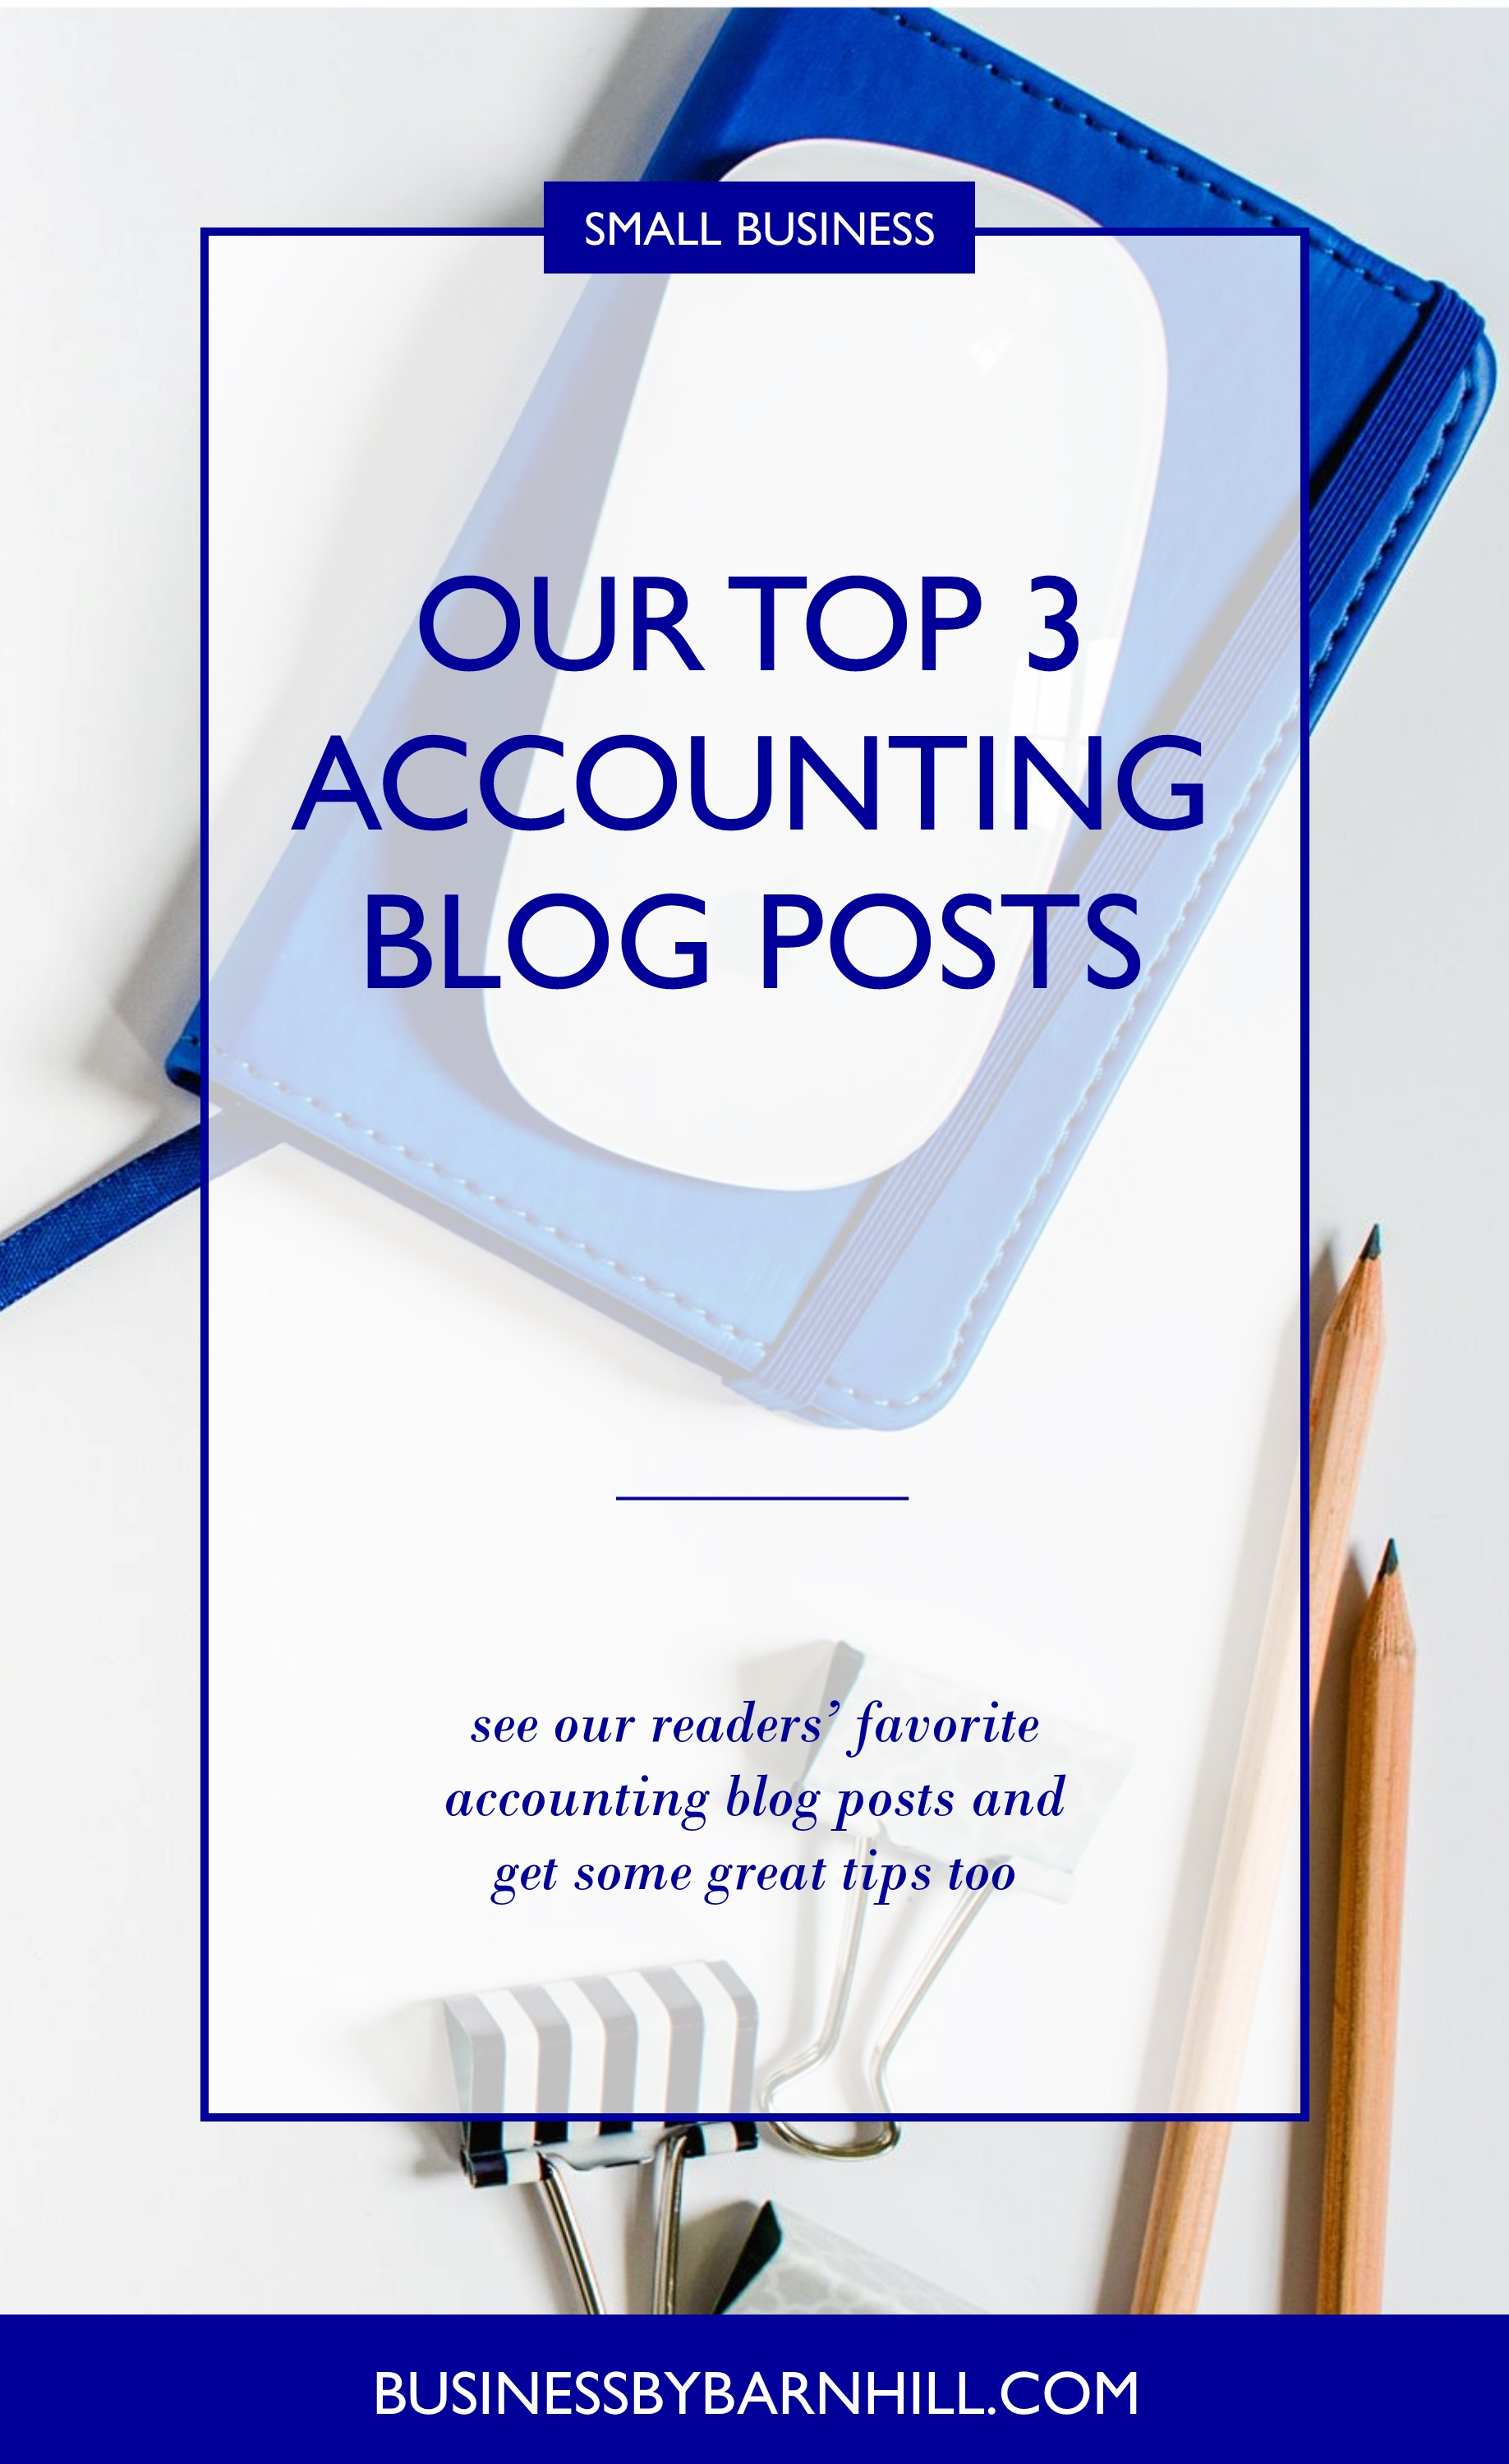 business by barnhill pinterest our top 3 accounting blog posts 2.jpg